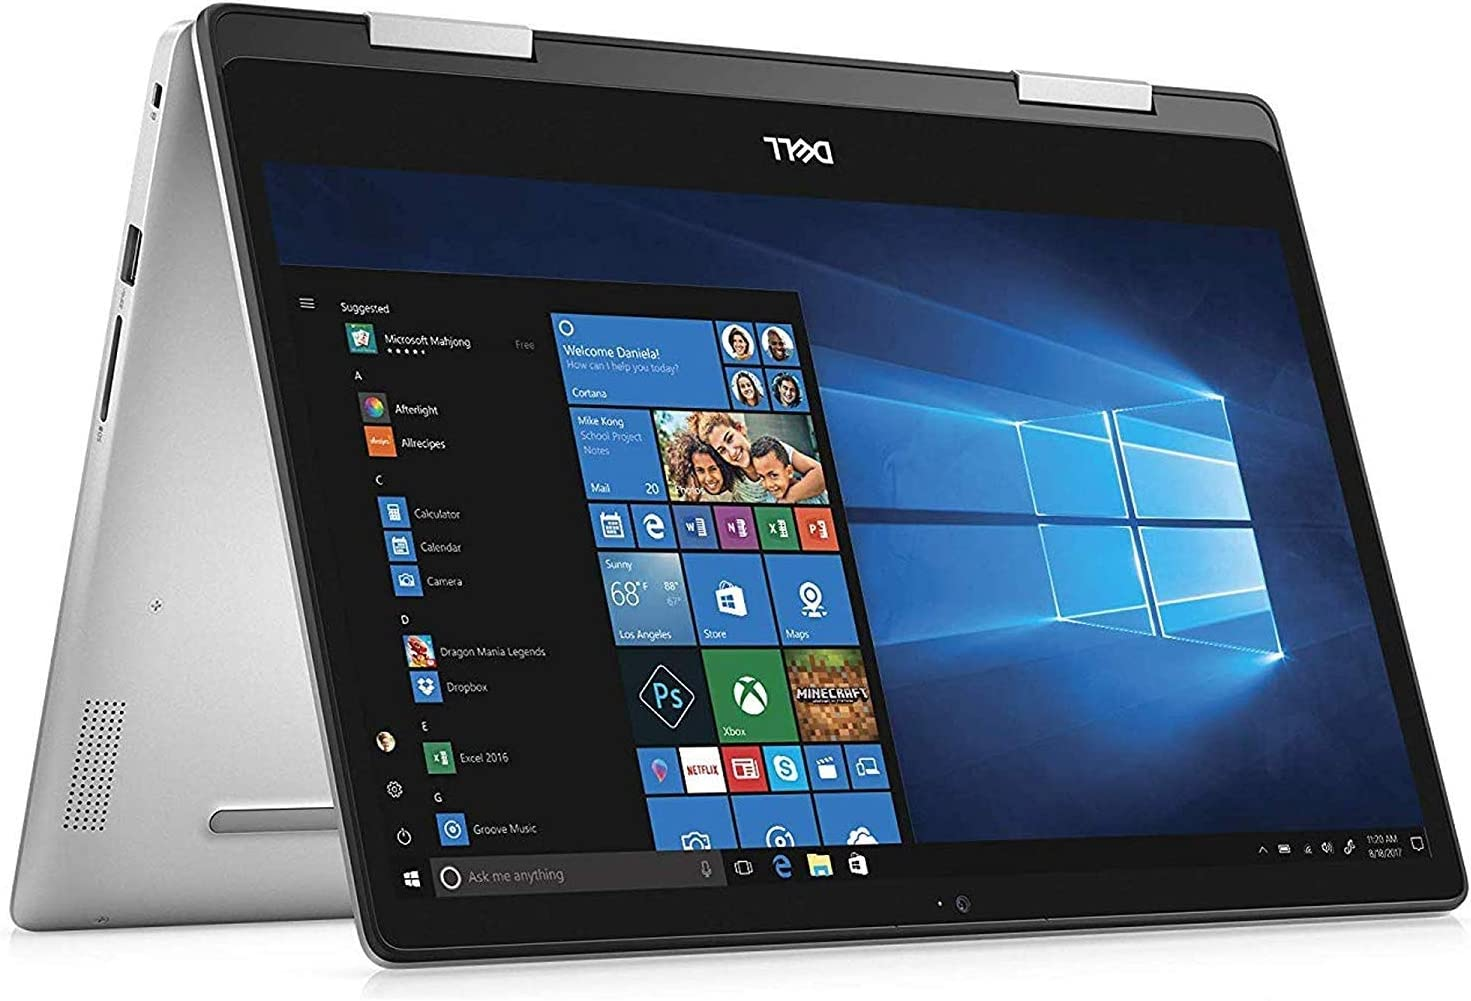 Dell Inspiron 14 5000 Series 14-Inch FHD Touchscreen (AMD Ryzen 5 3500U 2.1GHz, 8GB RAM, 128GB SSD, Radeon RX Vega8, Windows 10 Home 64-Bit) 2-in-1 Laptop Computer